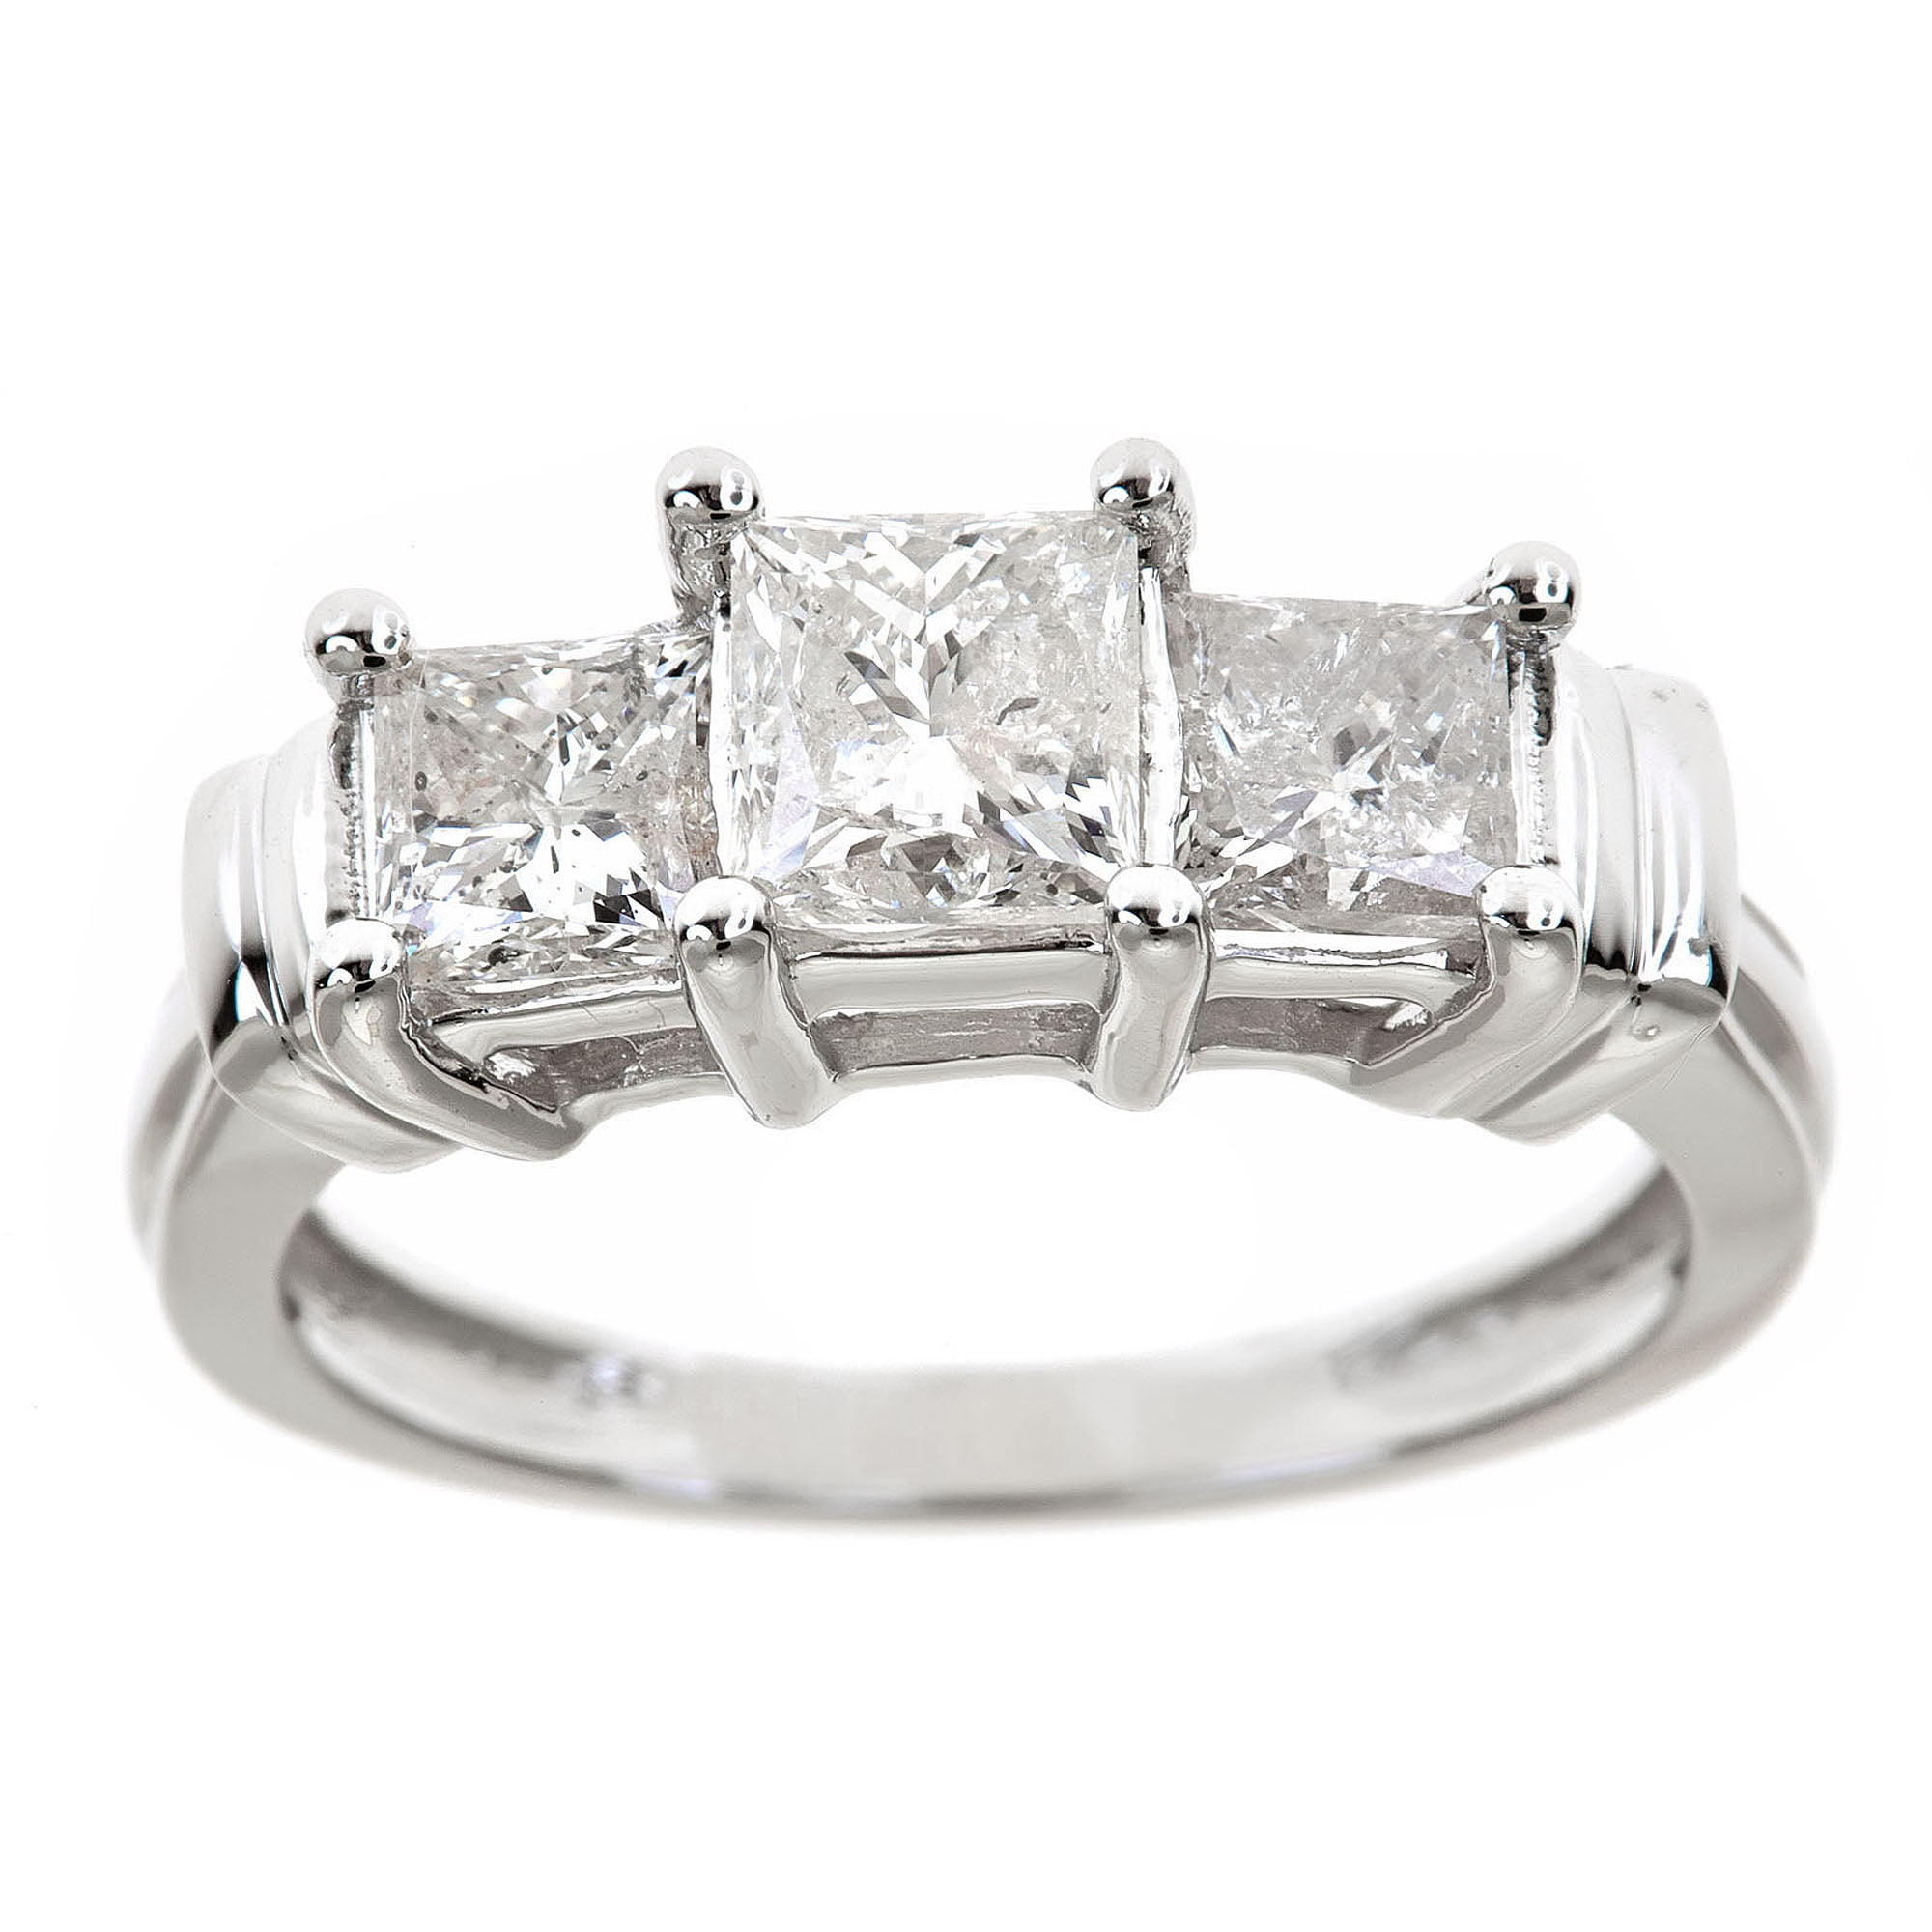 australia love popsugar grey sex rings rectangle diamond engagement